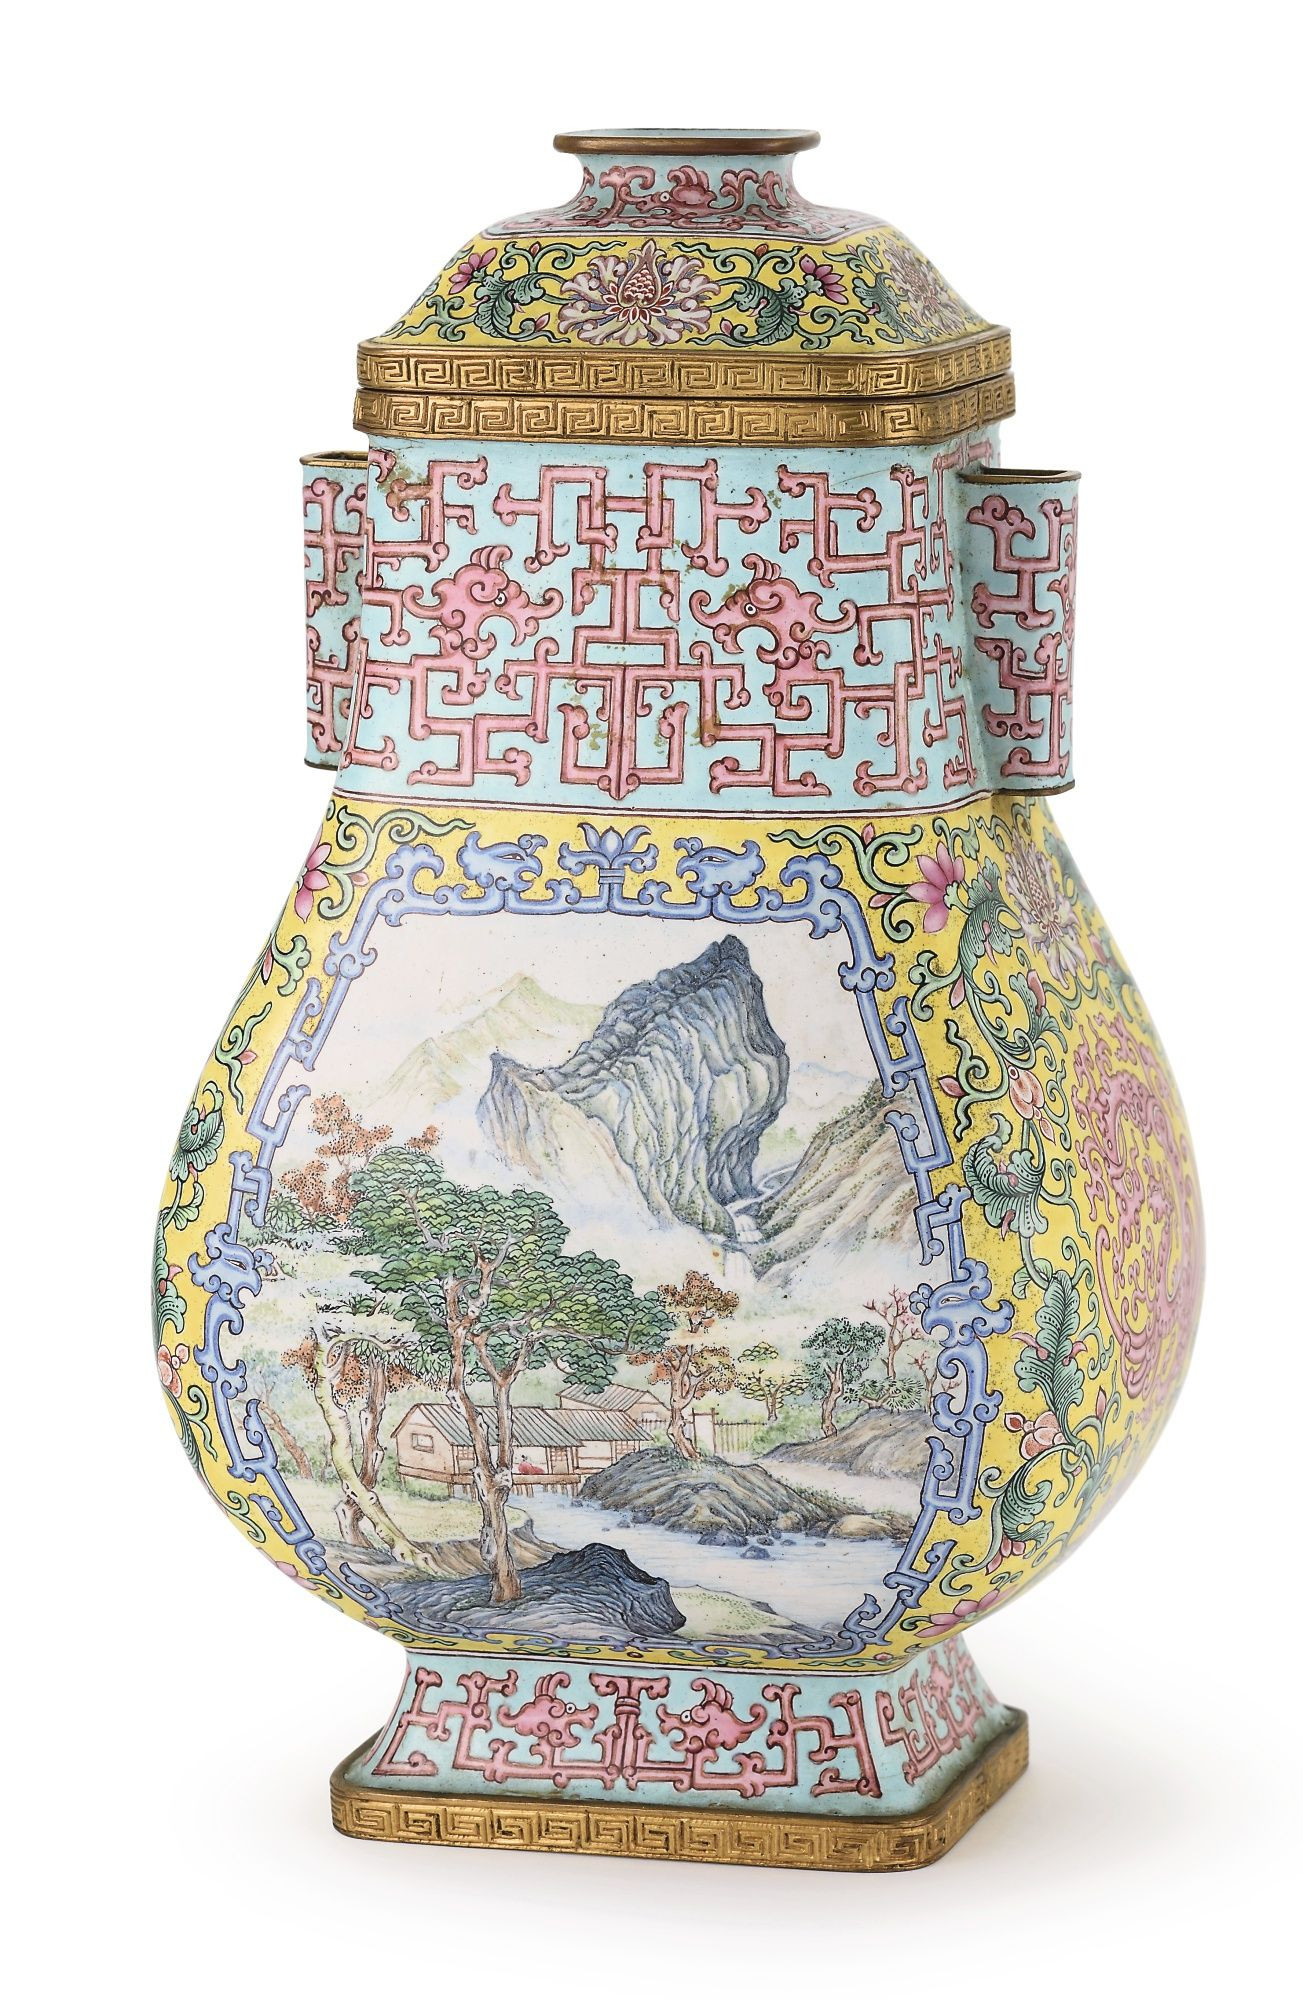 qianlong vase value of mindy t mindy jt pinterest account statistics in a yellow ground canton enamel landscape vase hu qing dynasty qianlong